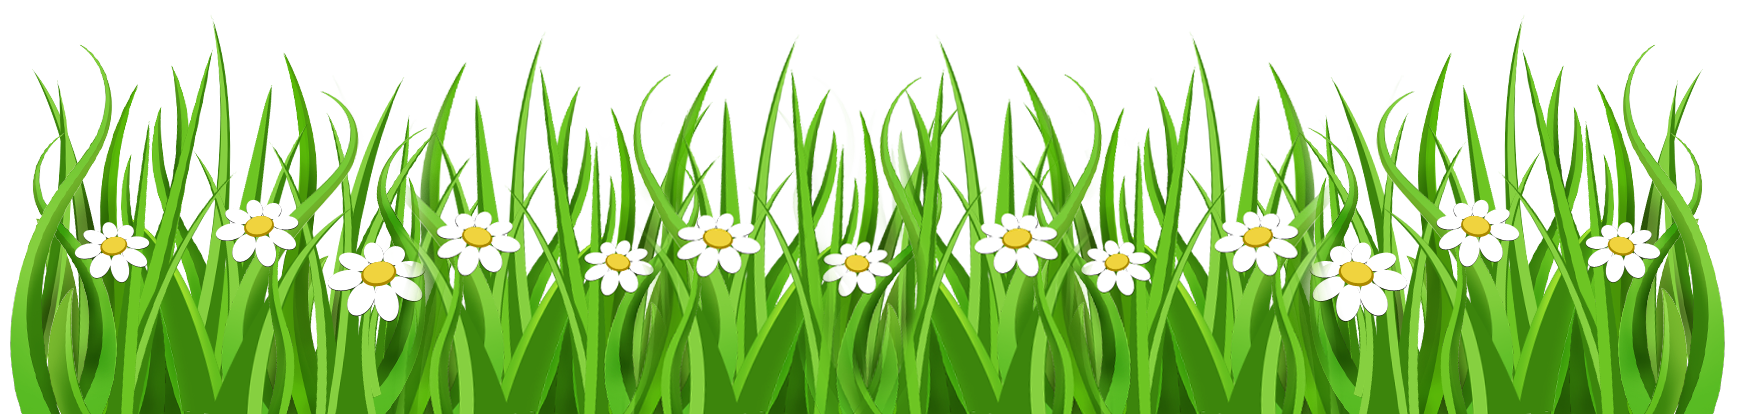 Free clip art grass clipart image.